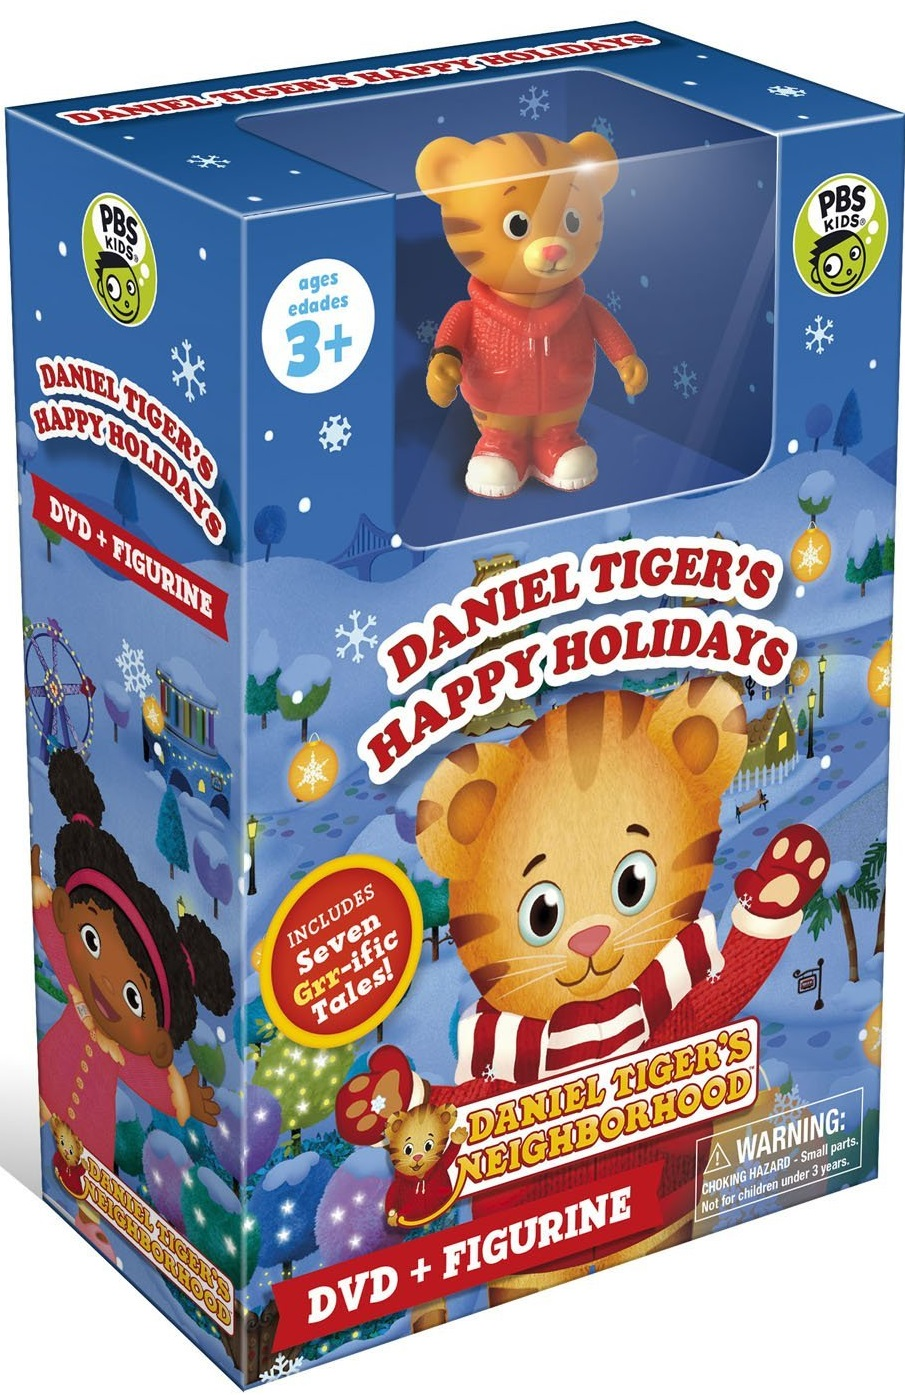 PBS Kids Releasing New Daniel Tiger\'s Neighborhood DVD Gift Set Next ...